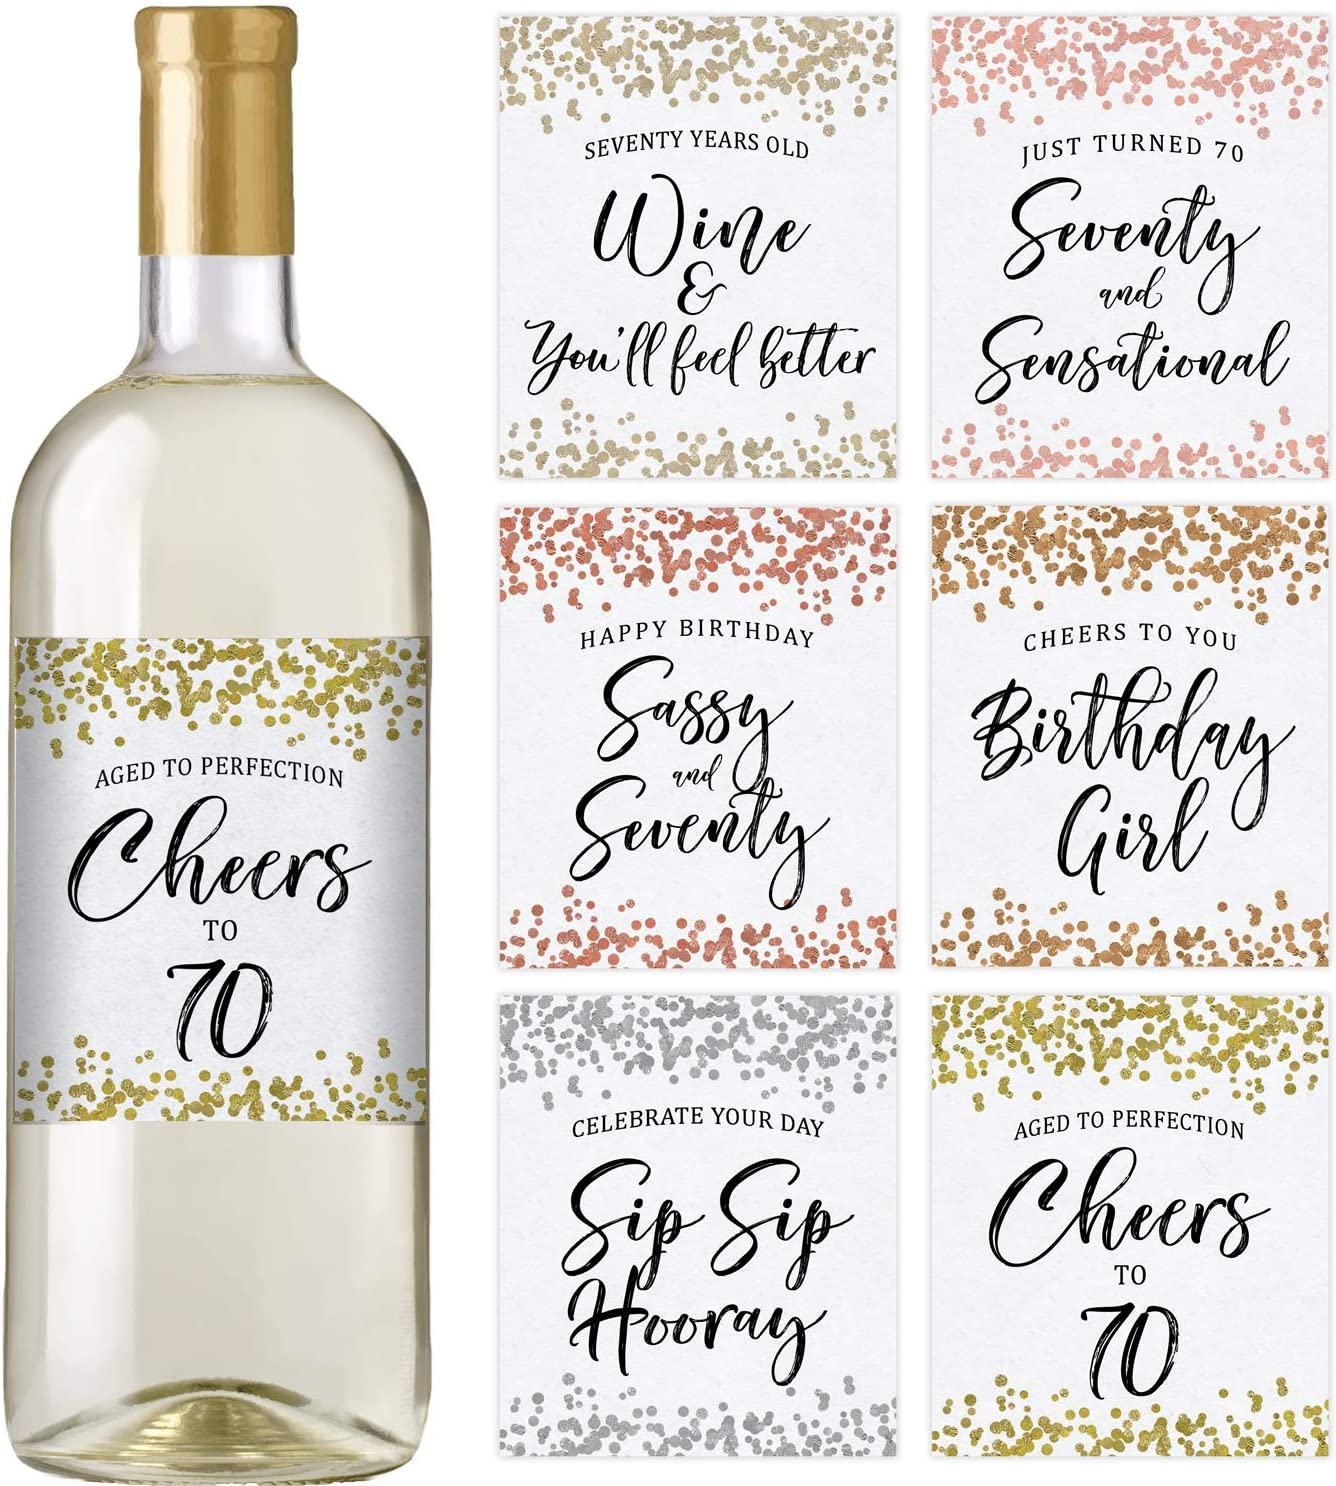 70th Birthday Wine Labels, Set of 6 Waterproof Labels, Birthday Gifts For Her, 70th Birthday Party Decorations, Ideas and Supplies